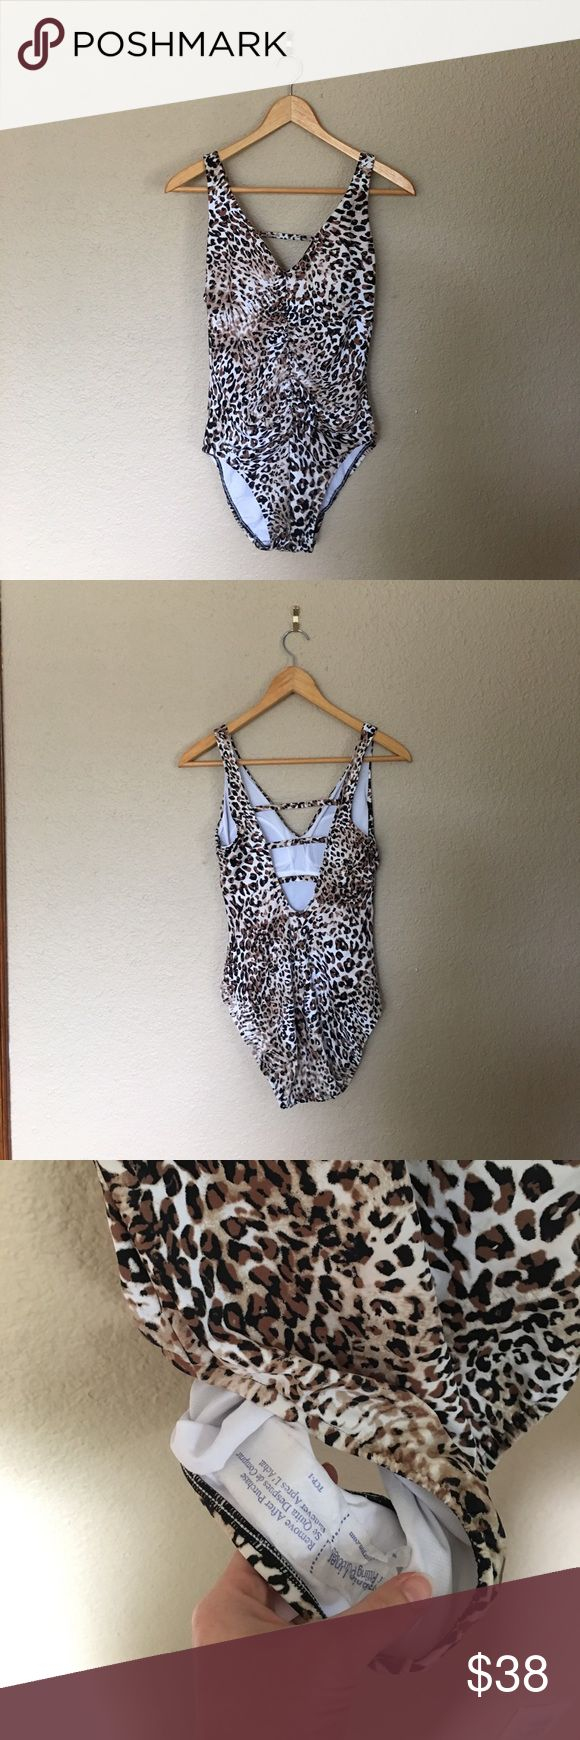 NWT Leopard Animal Print Strappy One Piece Ruched Beautiful one piece with hygienic liner in tact. Lightly padded and fully lined. Brand is aqua Green. aqua green Swim One Pieces